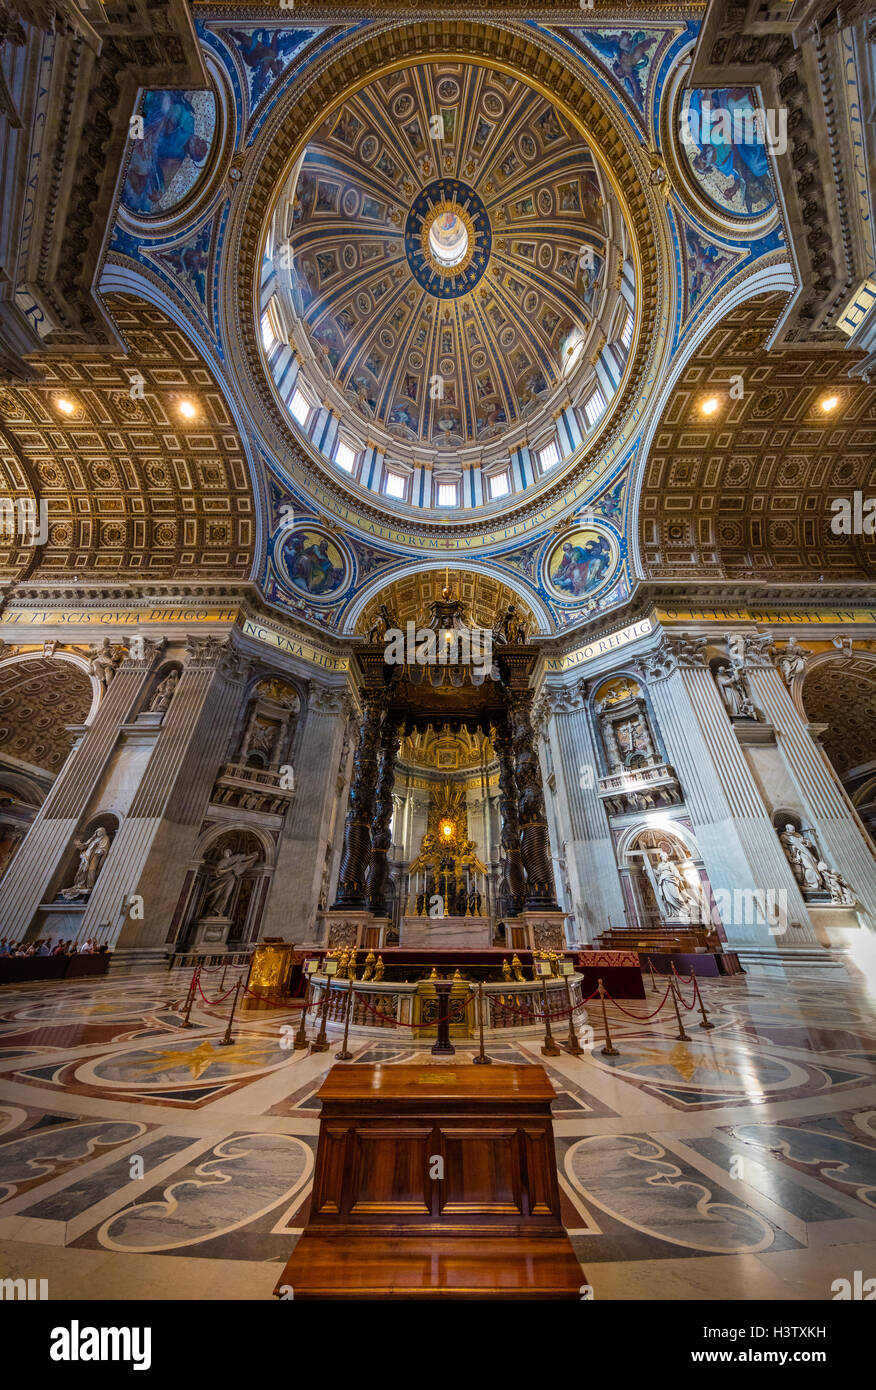 St. Peter's Basilica is a Late Renaissance church located within the Vatican City. - Stock Image